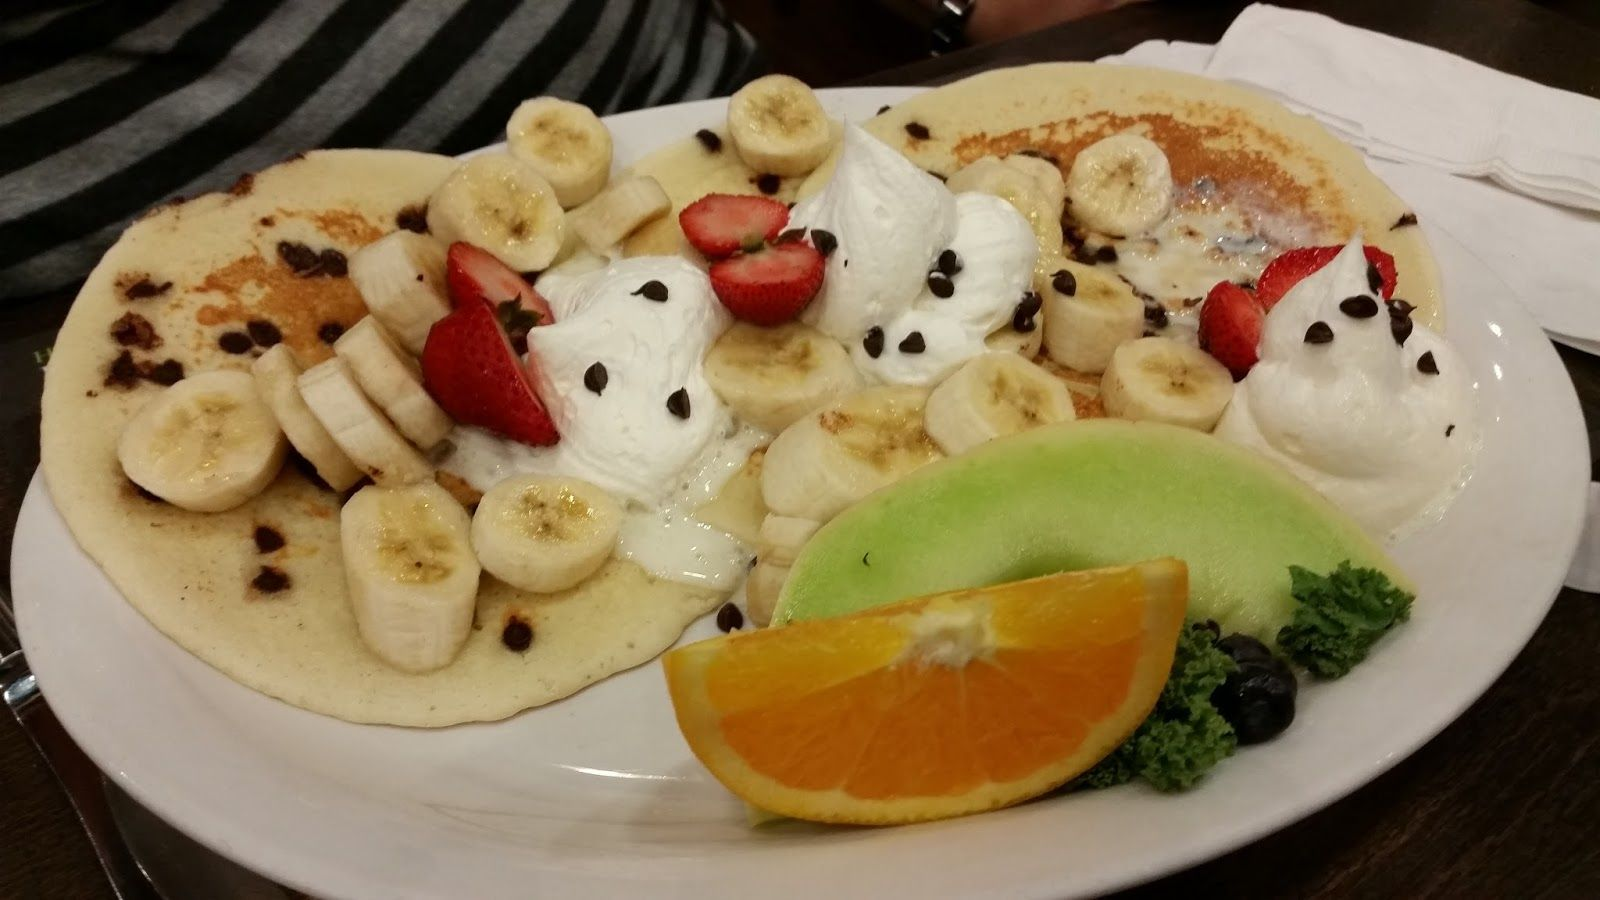 What S Gluten Free At Tutti Frutti Breakfast And Lunch Gluten Free Restaurants Gluten Free Eating Eat